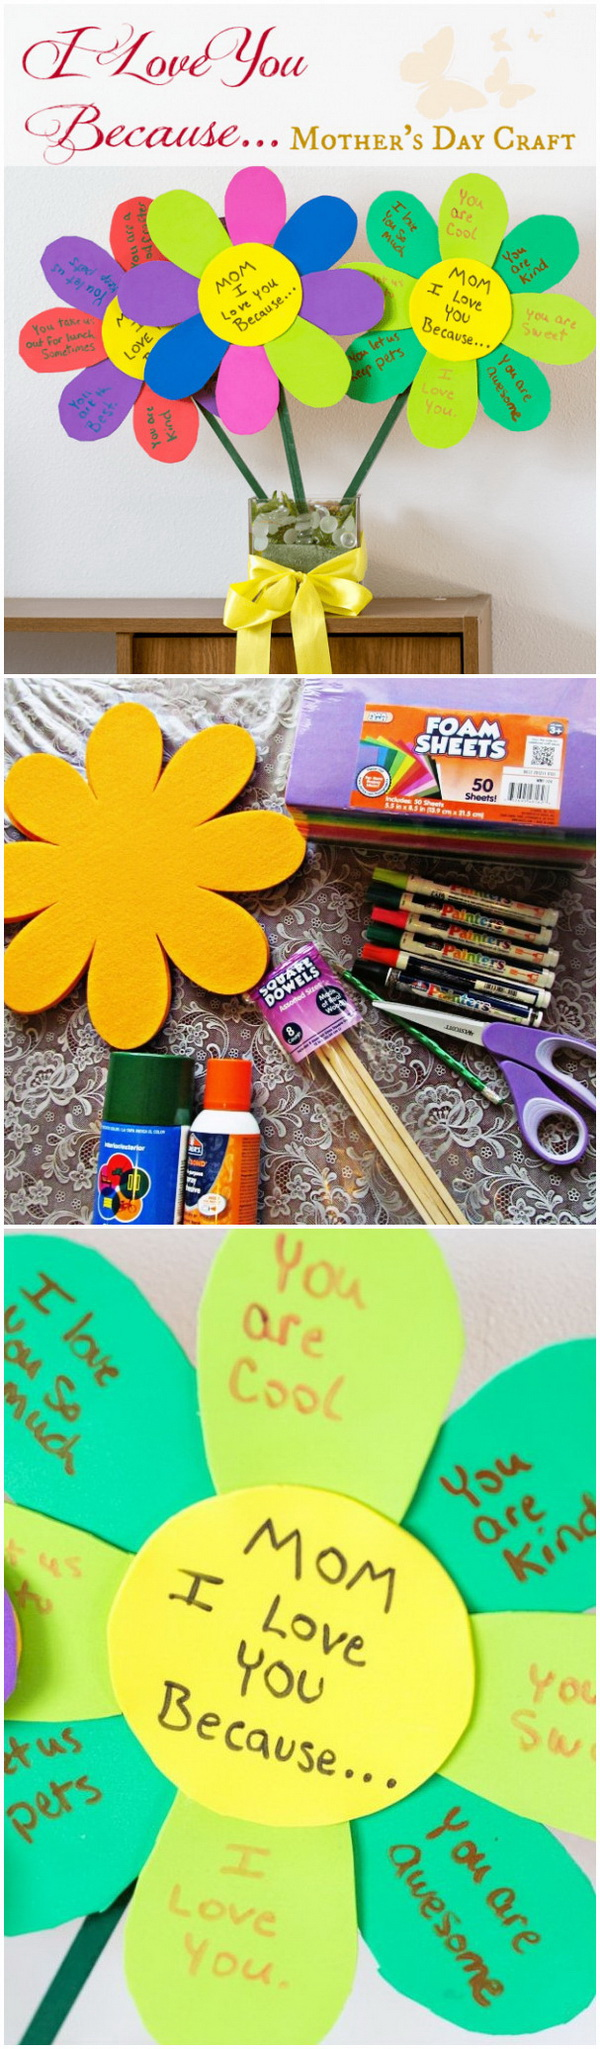 Mother's Day Crafts and gifts: I LOVE YOU Because... Mother's Day Craft Flowers.